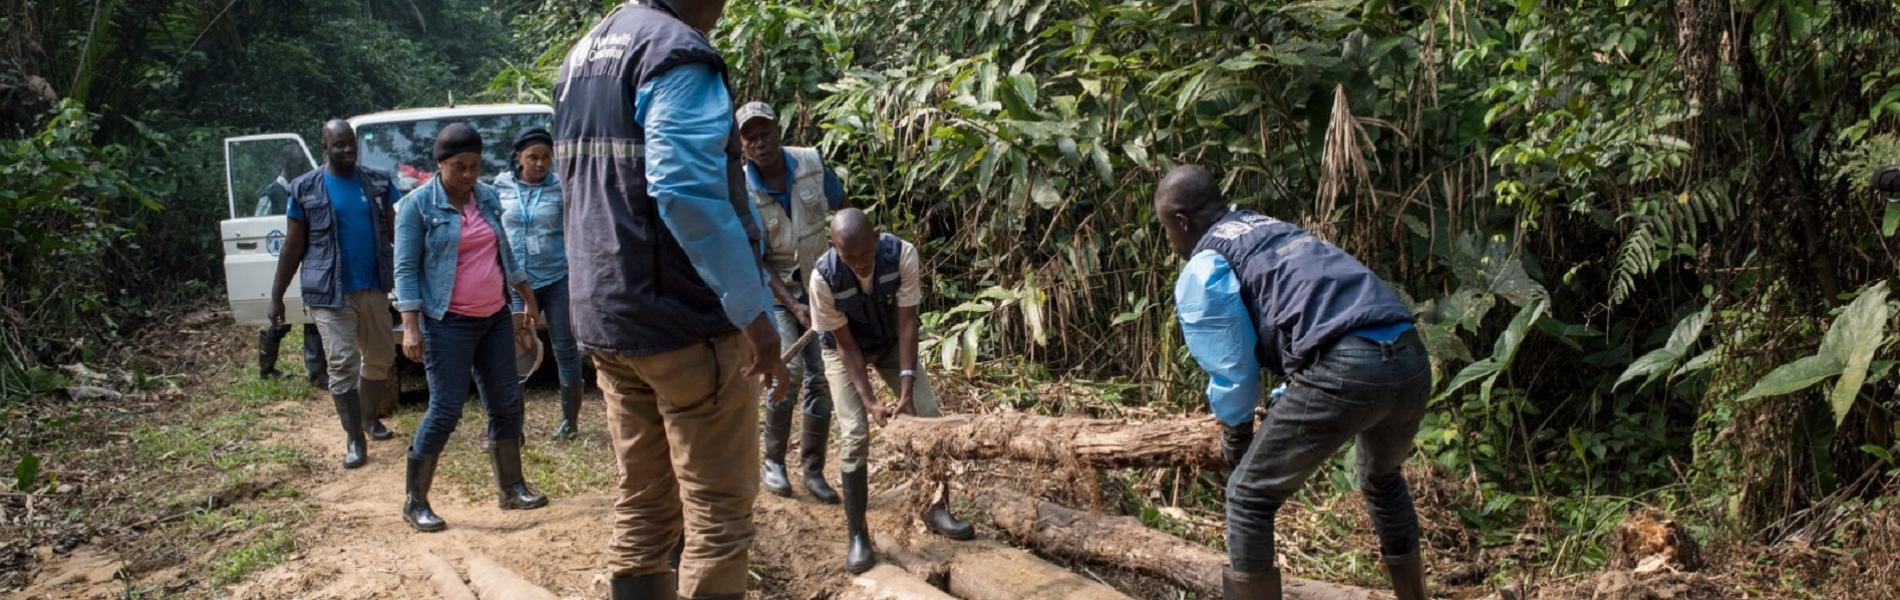 Bringing Ebola vaccine to remote communities in the Democratic Republic of Congo